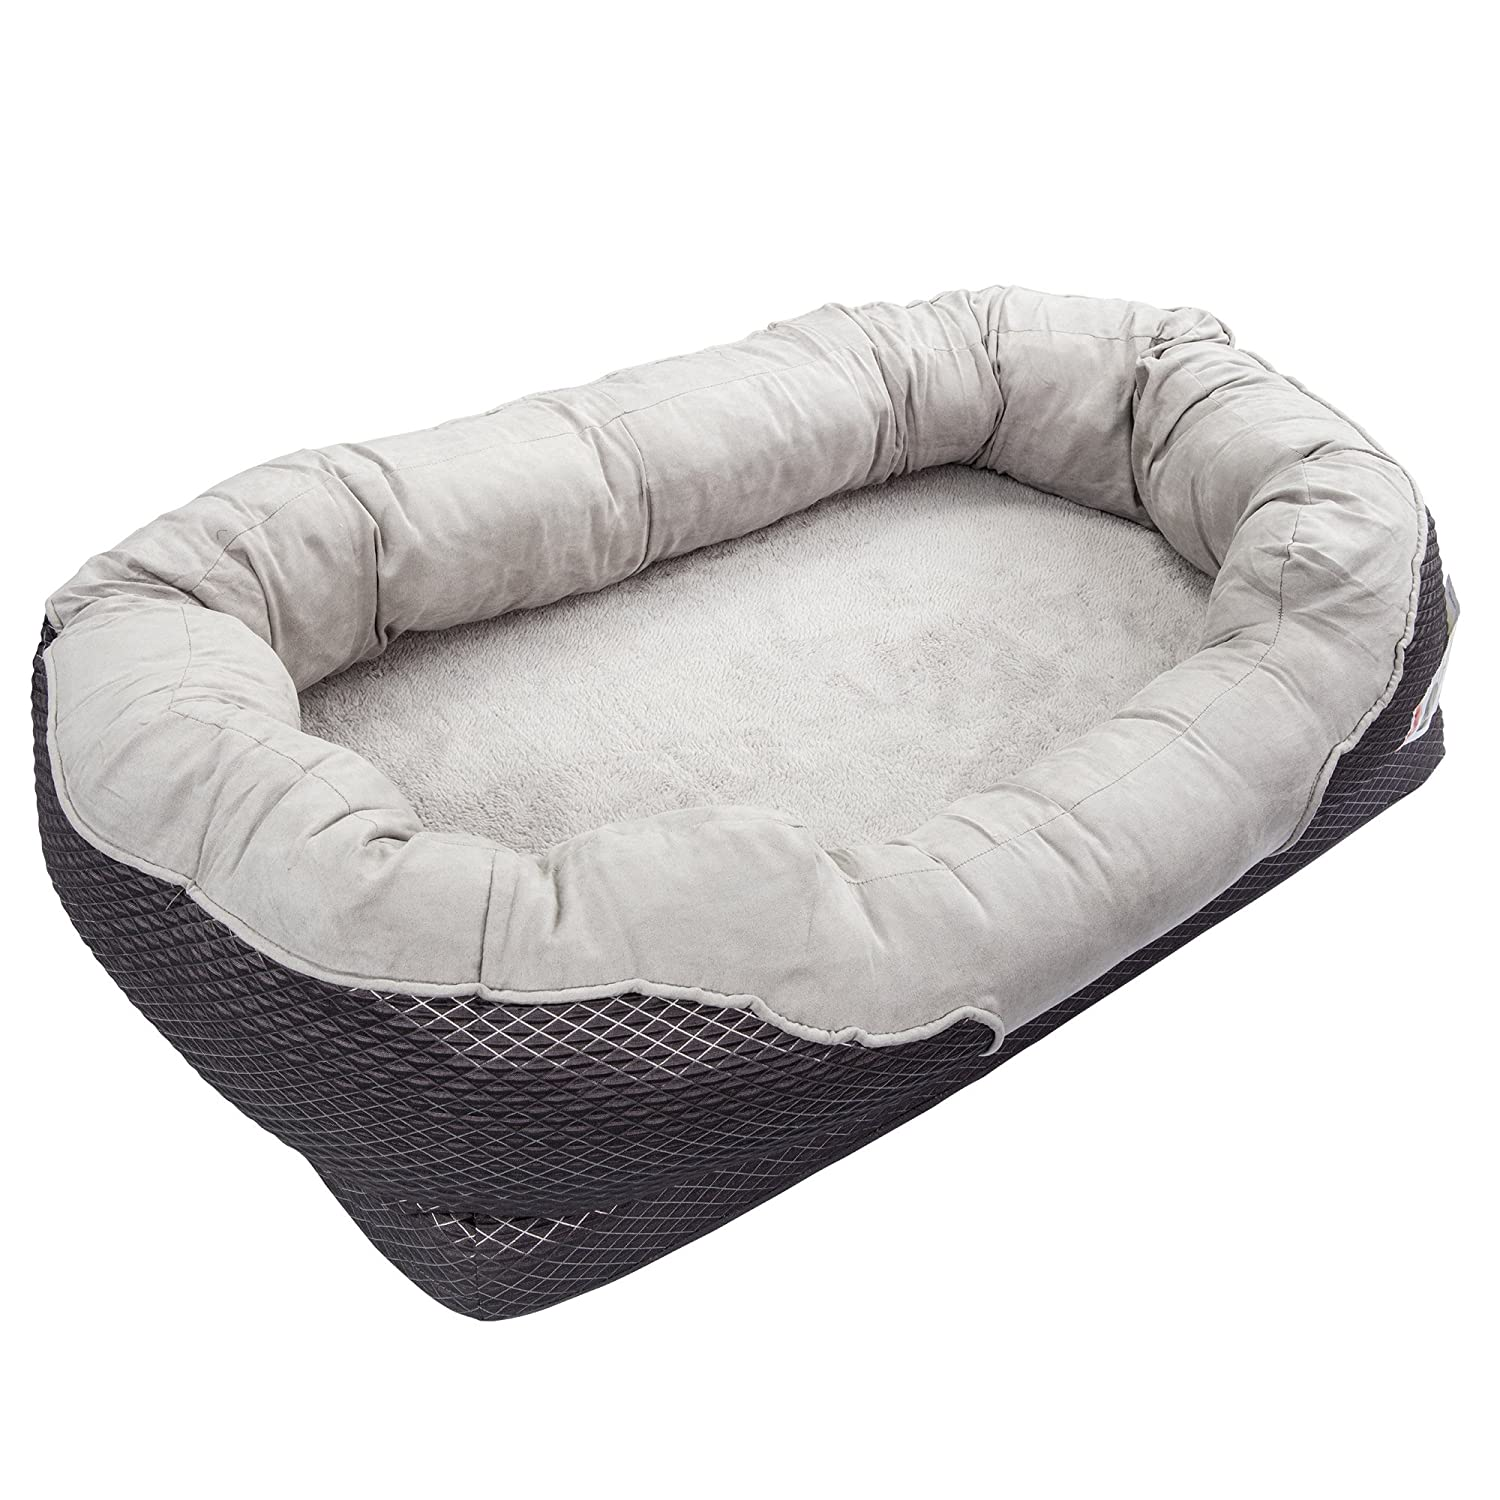 beds products pls large paradise foam orthopedic for bed dog dogs pet